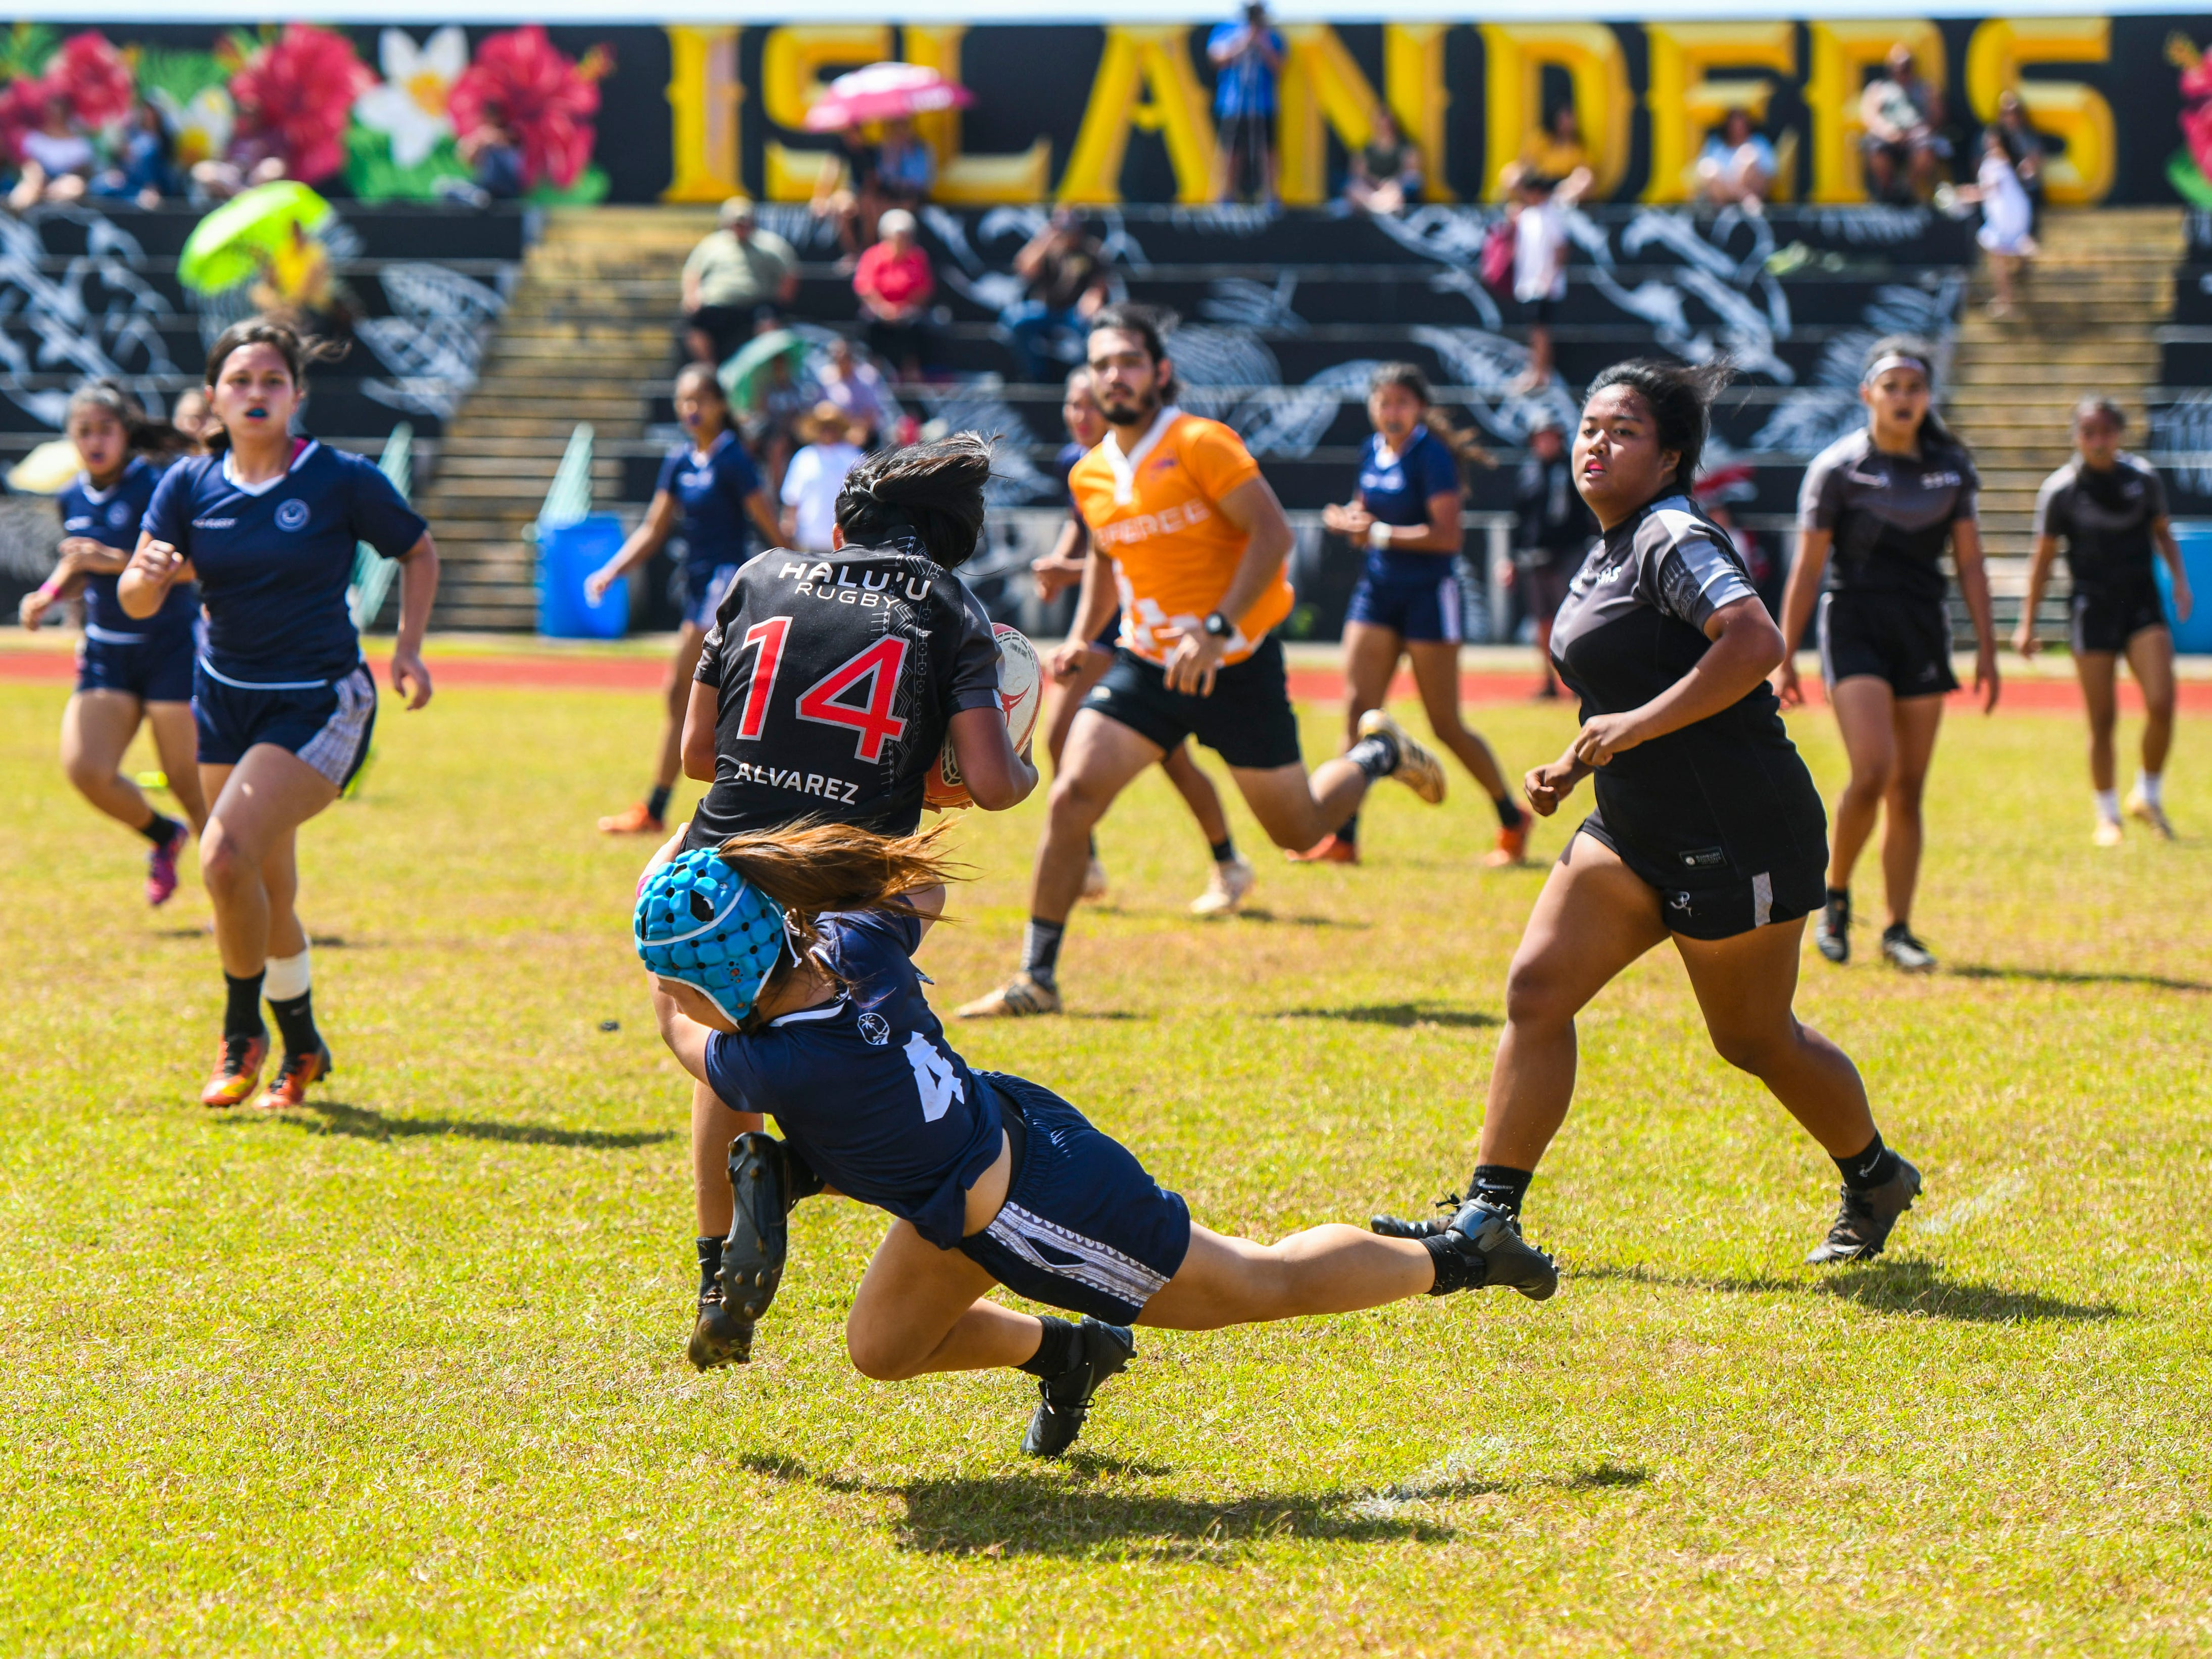 Notre Dame High School Royals' Faith Moylan tackles Simon Sanchez High School Sharks' ball-carrier during their Girls Varsity IIAAG/GRFU rugby matchup on Ramsey Field at the John F. Kennedy High School in Tamuning on Saturday, March 9, 2019. In the end, the Royals defeated the Sharks with a final score of 14-12.